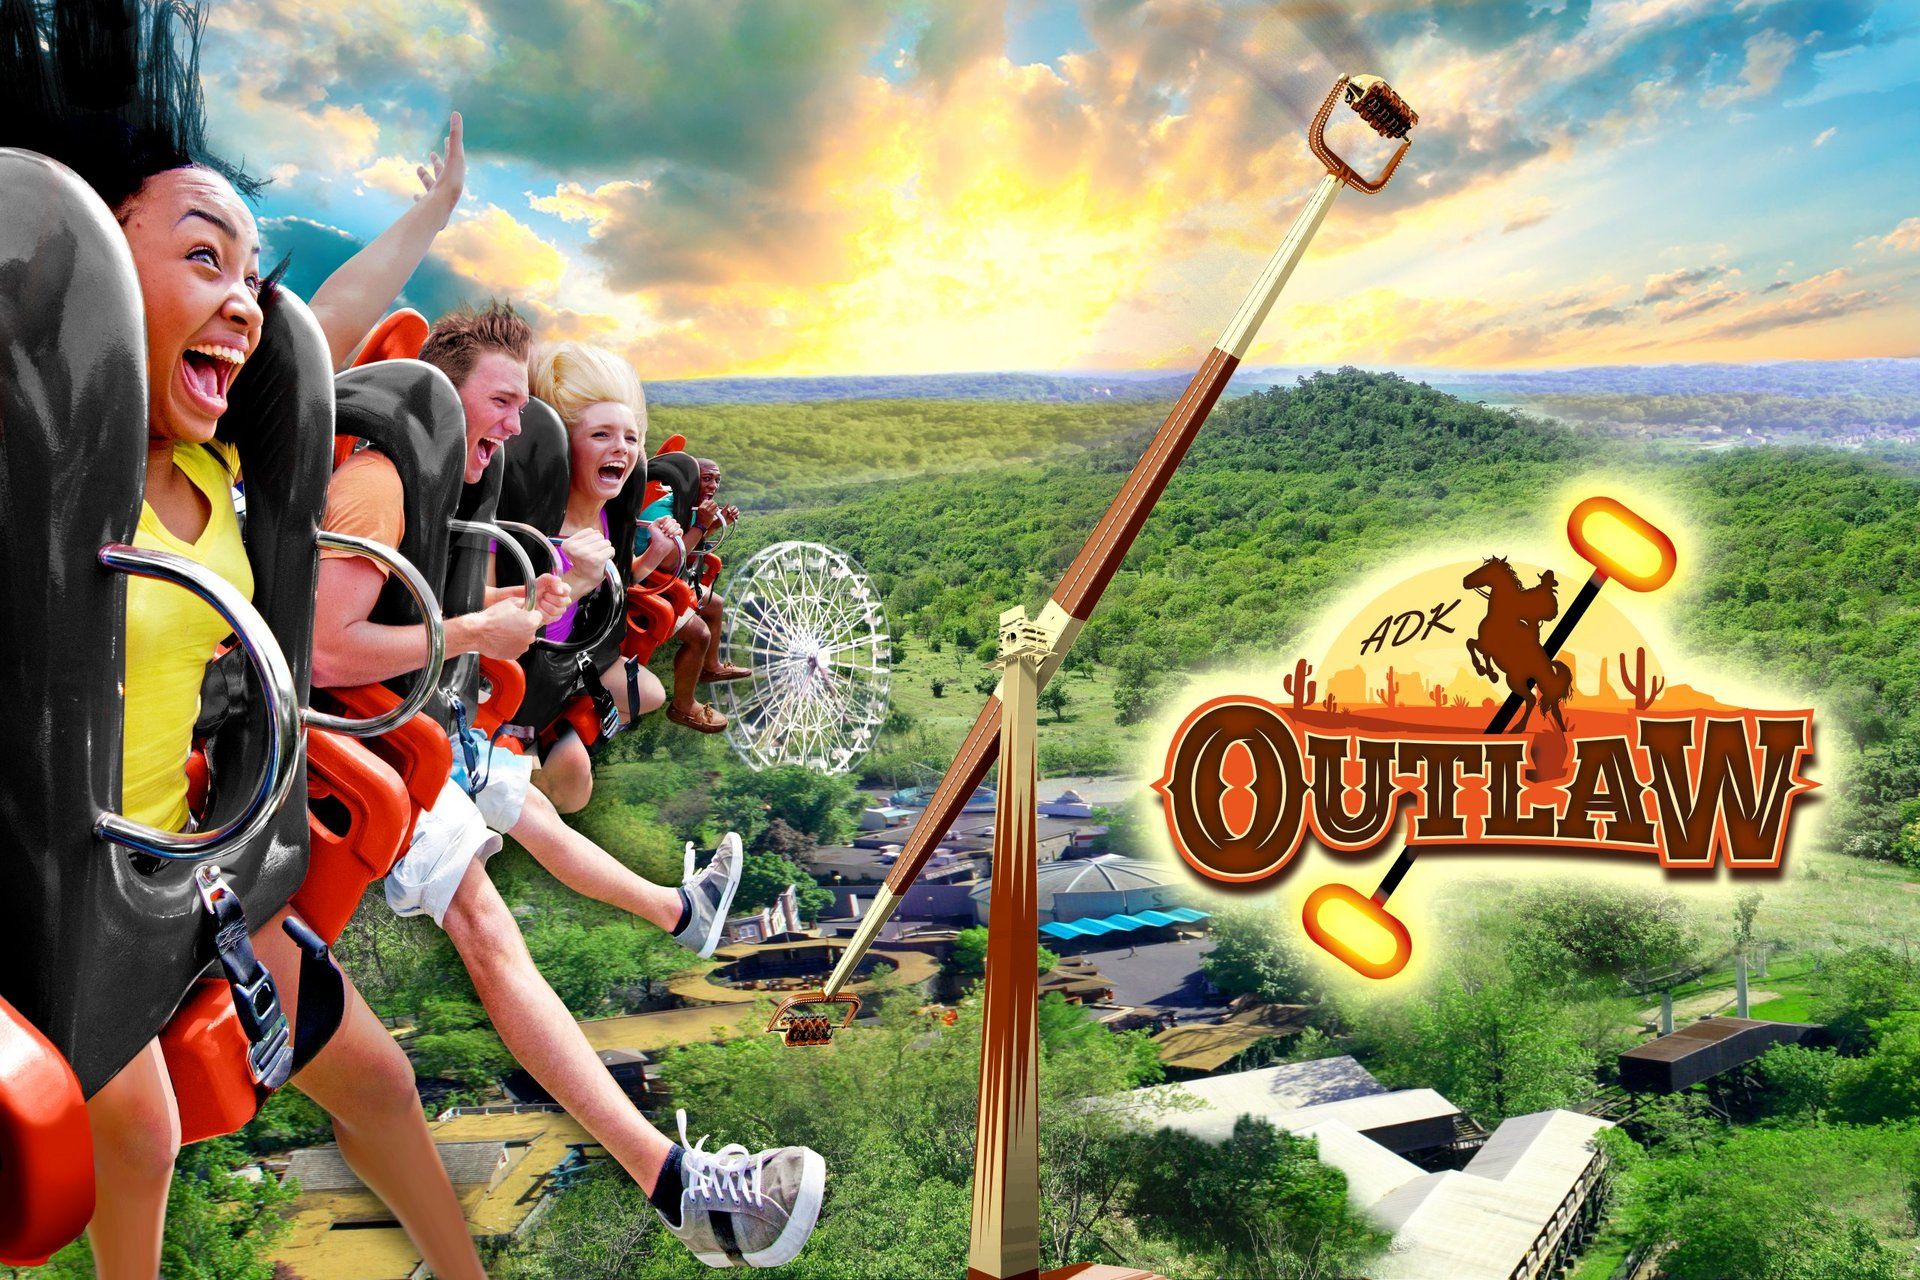 key-art-of-adirondack-outlaw-at-six-flags-great-escape-resort